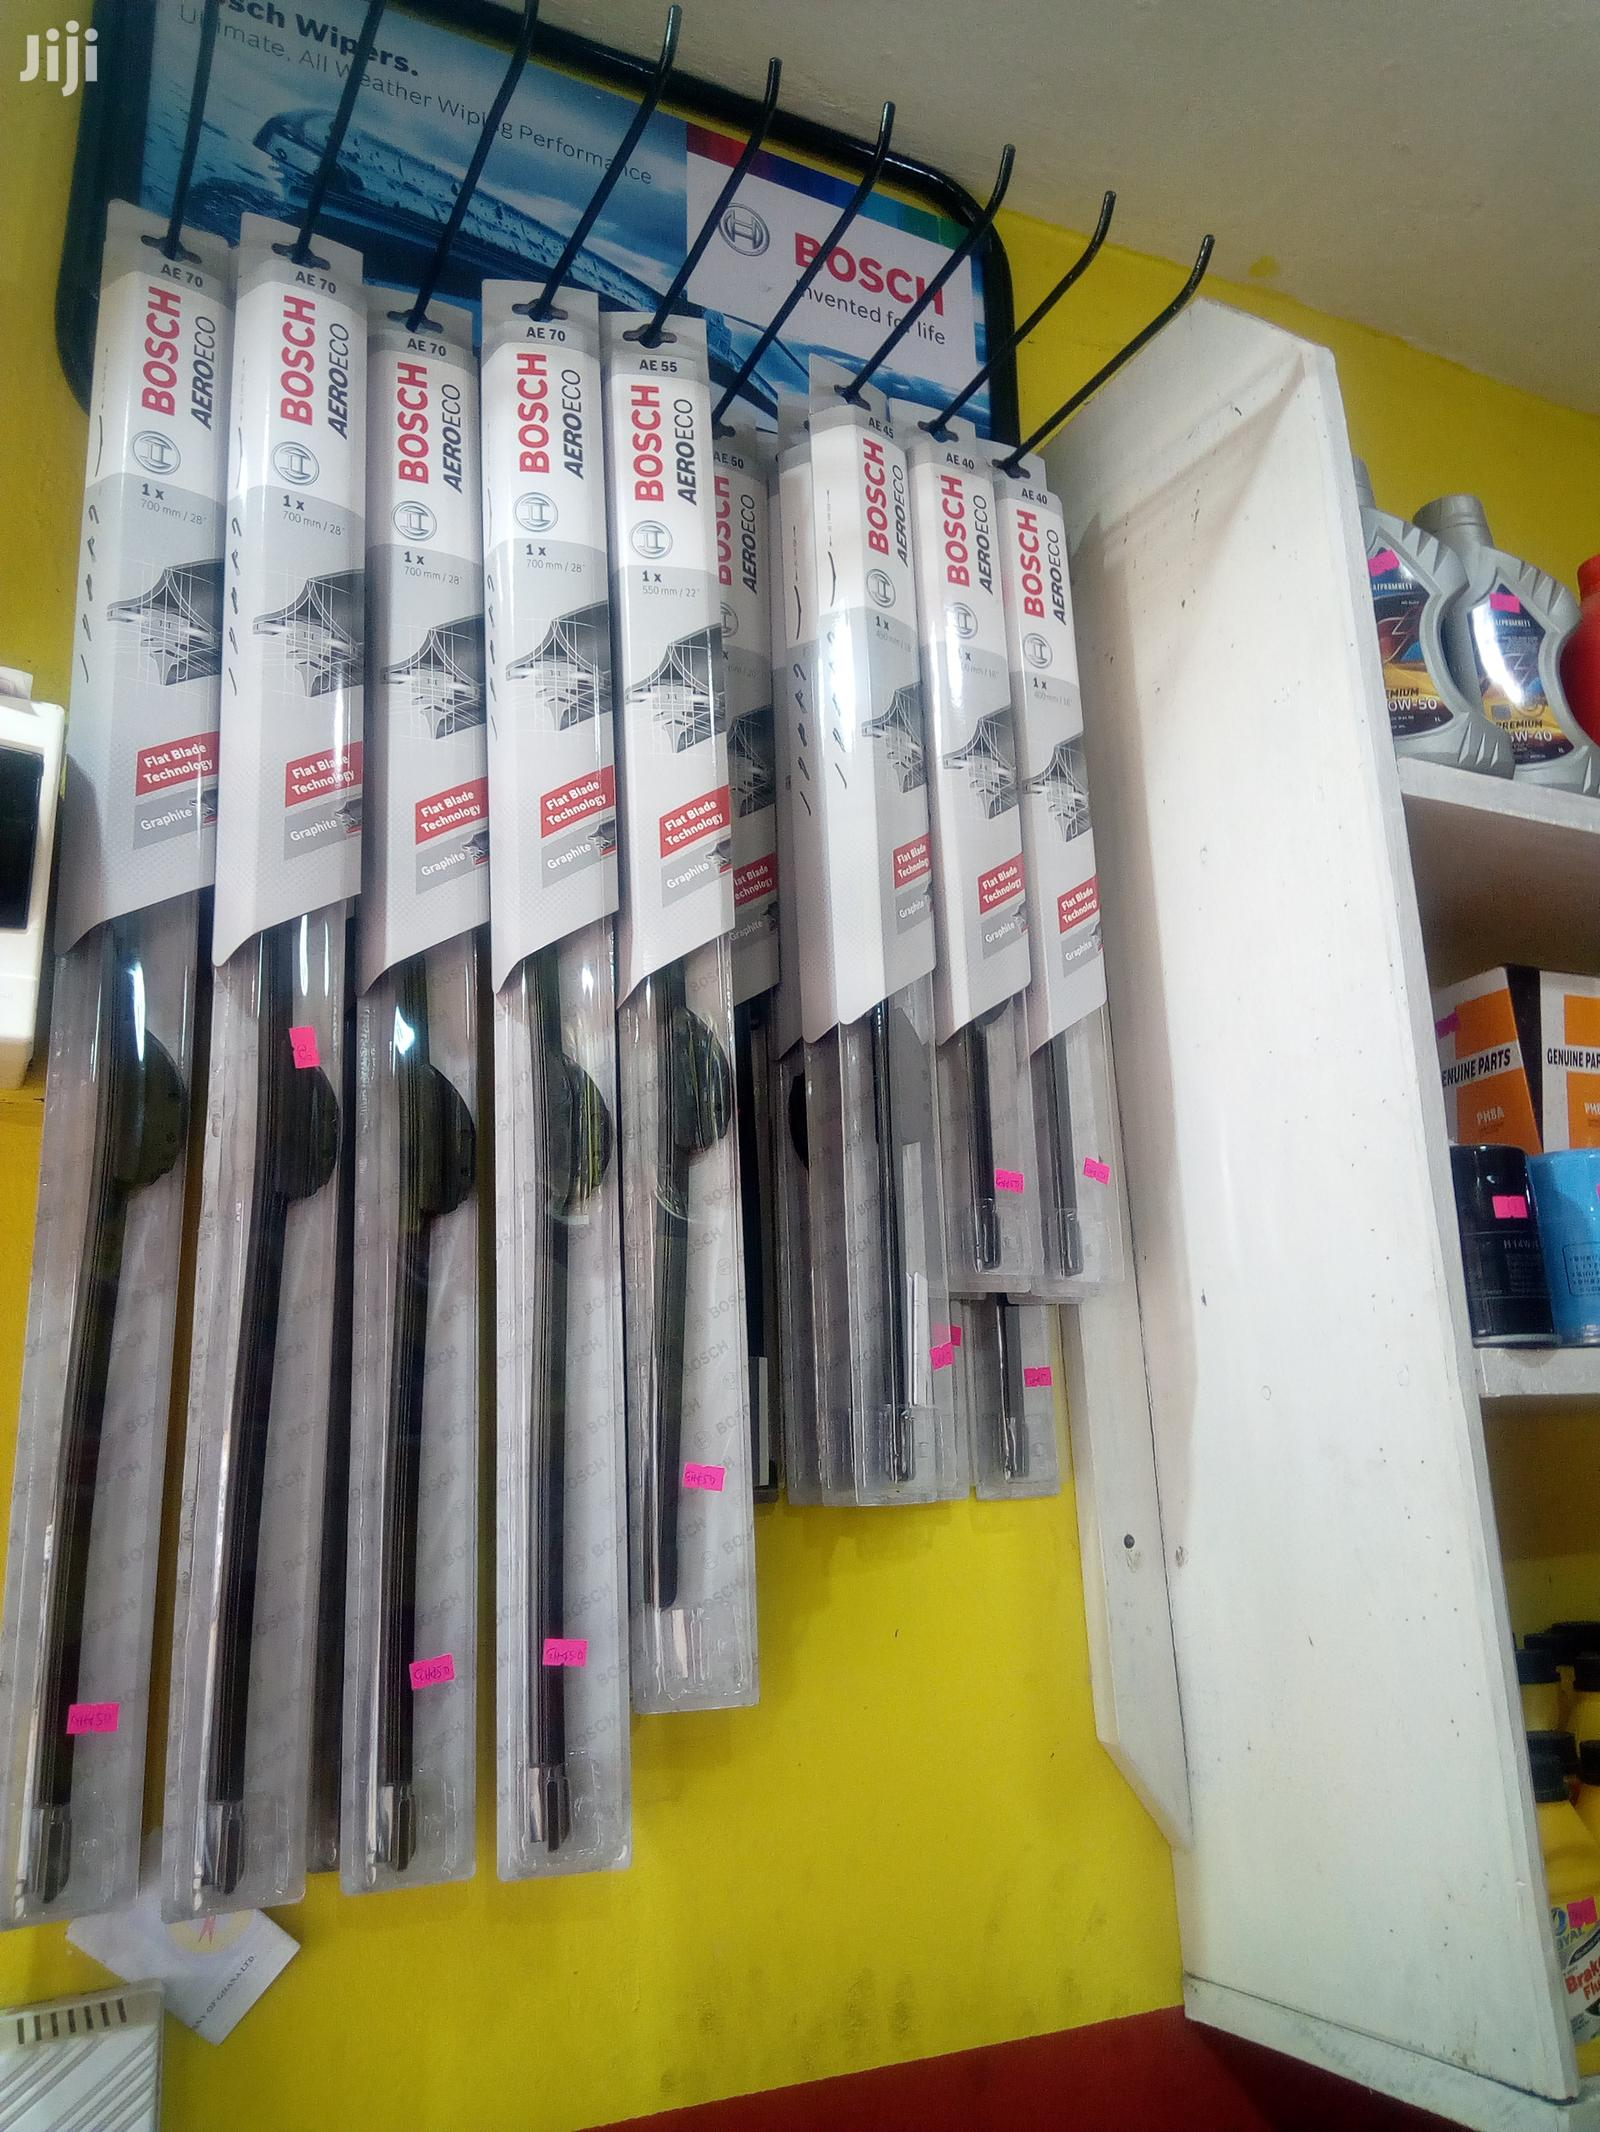 Bosch Wiper Blades Cleans Water On Windscreen Well | Vehicle Parts & Accessories for sale in North Kaneshie, Greater Accra, Ghana